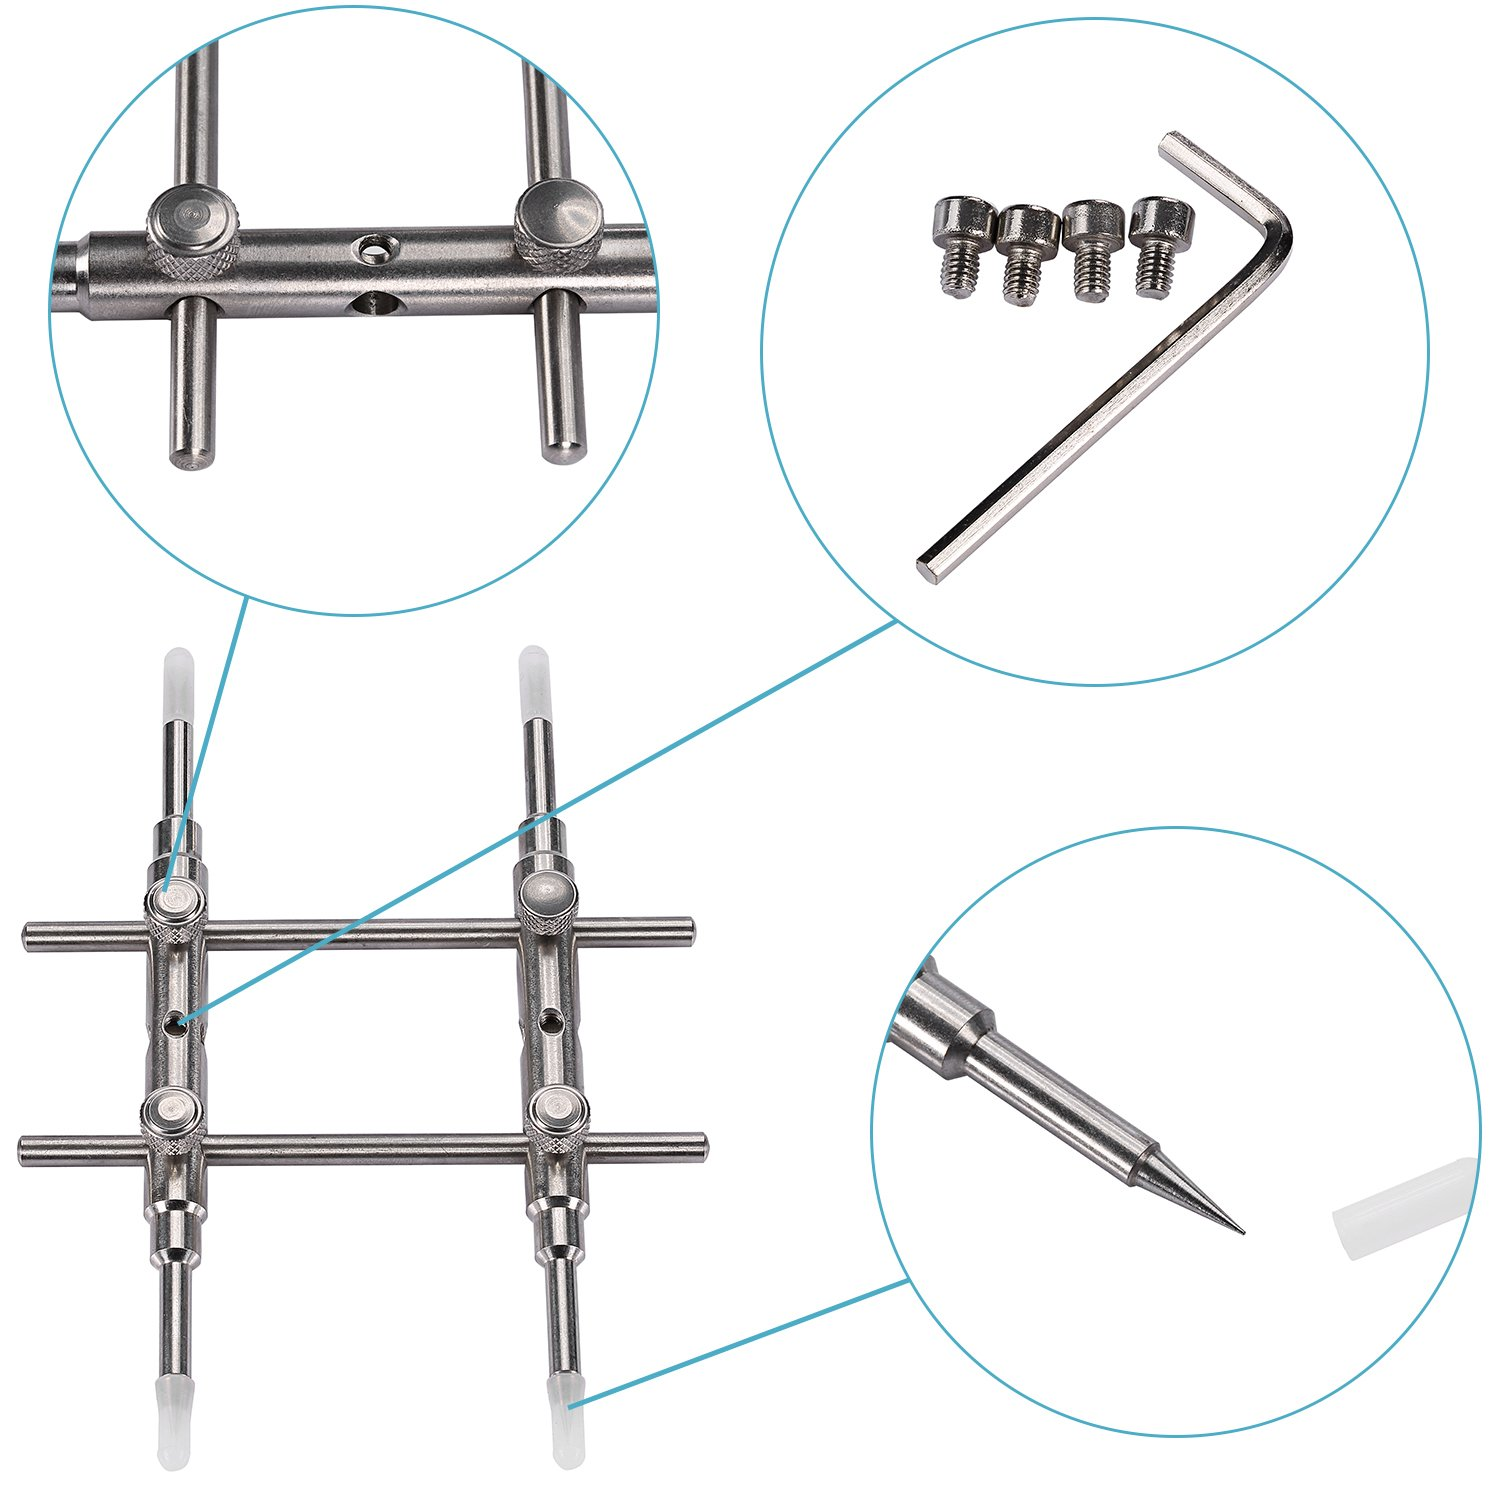 Neewer Professional Flat & pointed Tips DSLR Camera Lens Spanner Wrench Repairing Opening Tool for Most Cameras by Neewer